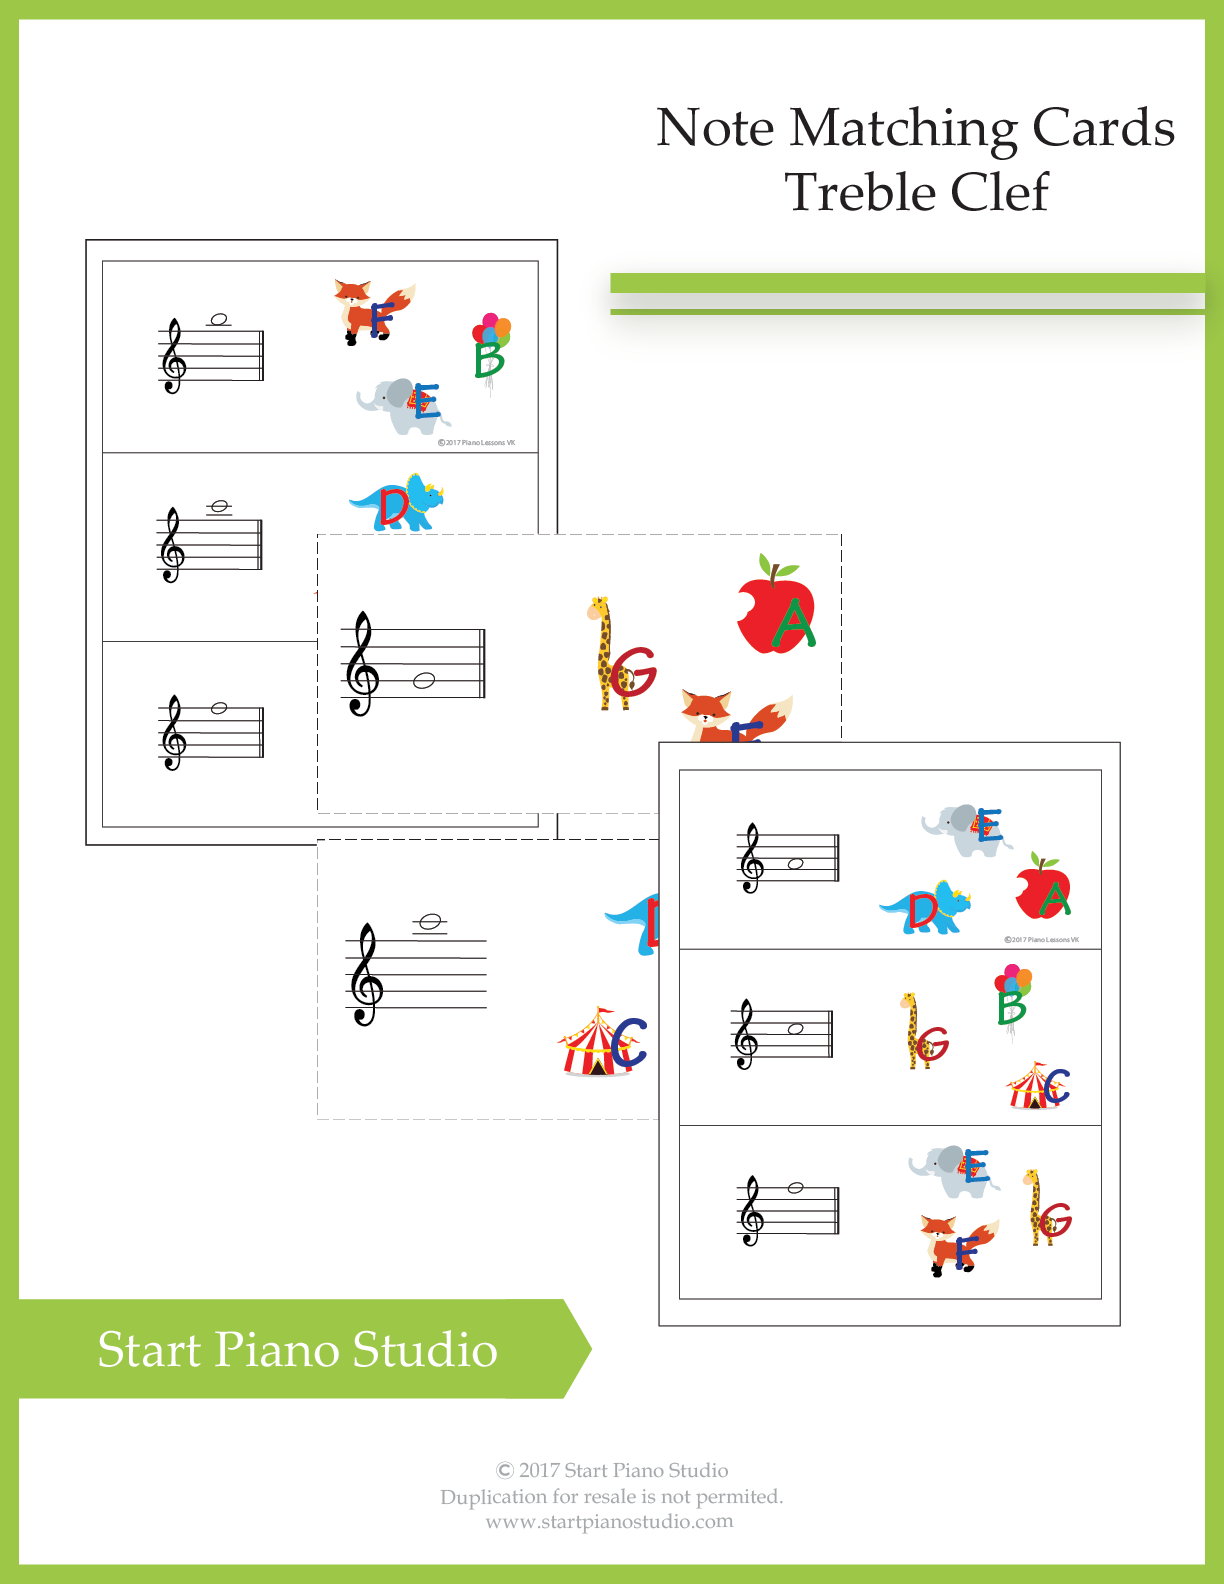 Note Matching Treble Clef Cards 10 Pages Of Colorful